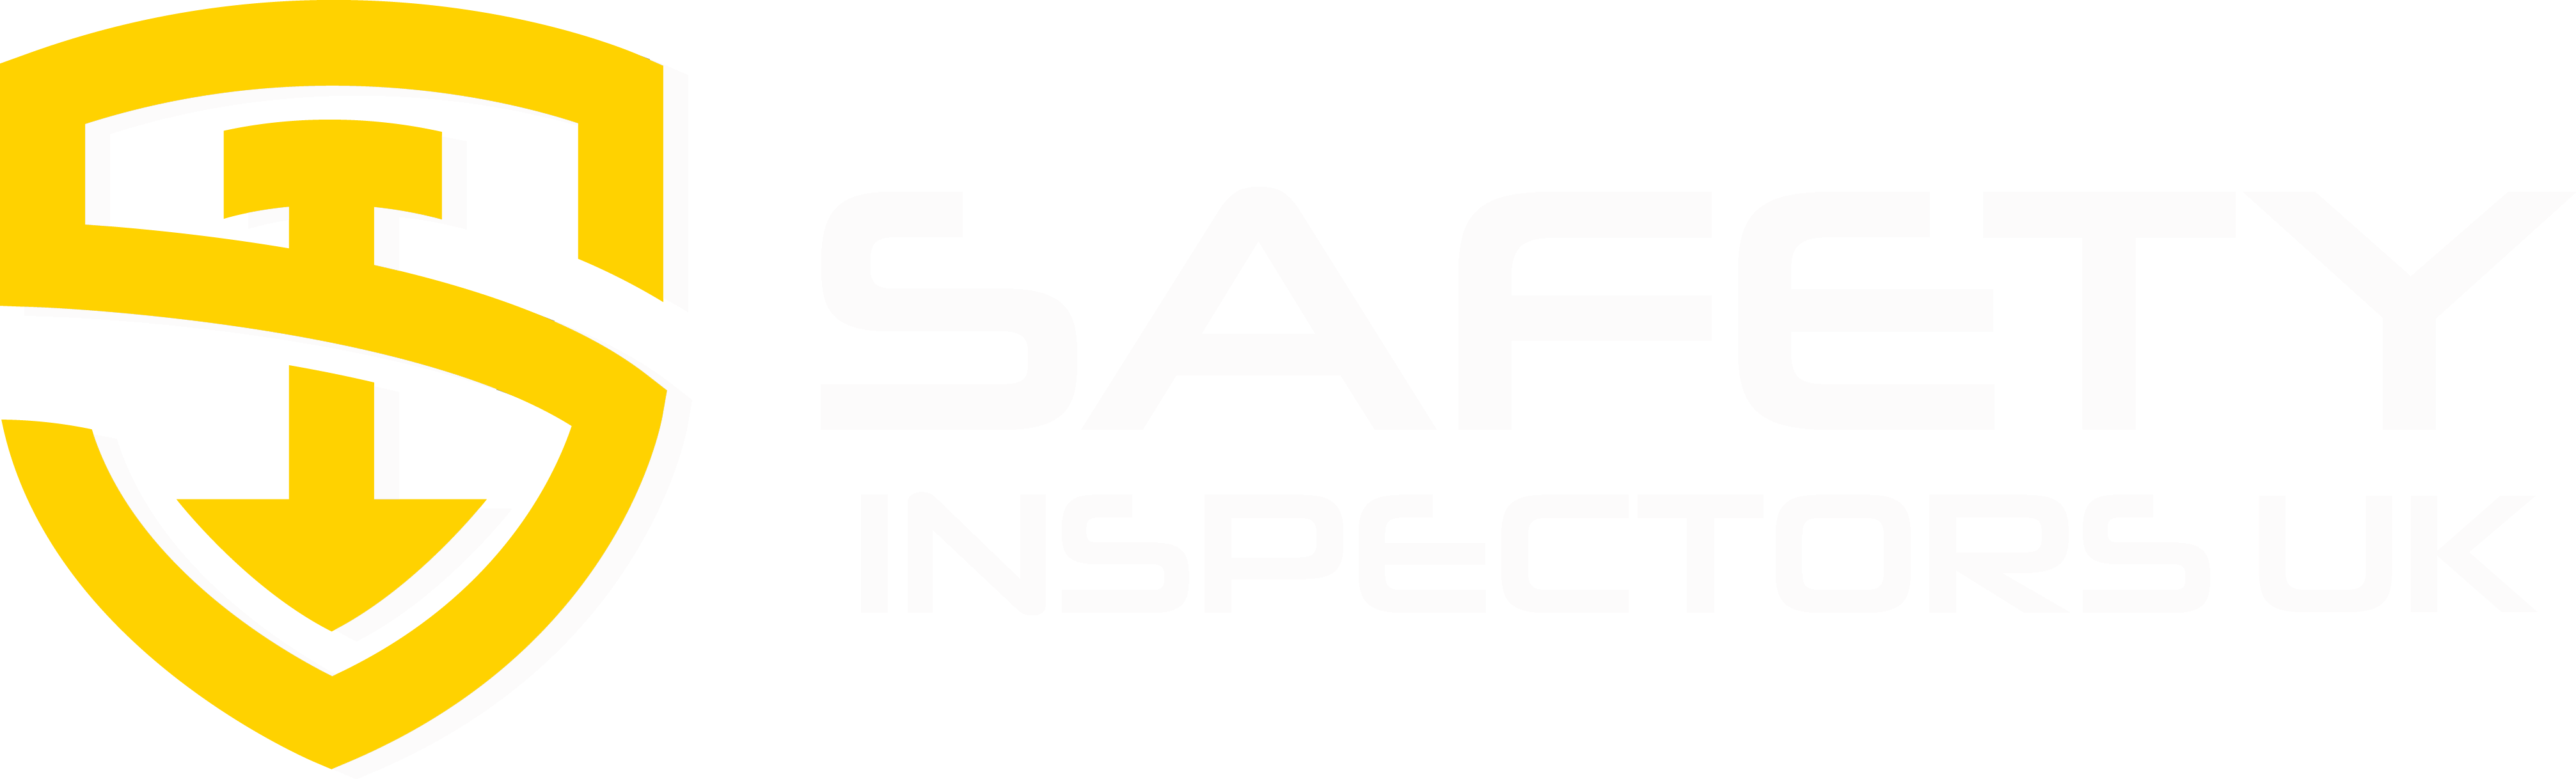 Safety-Inspectors-UK-White-PNG